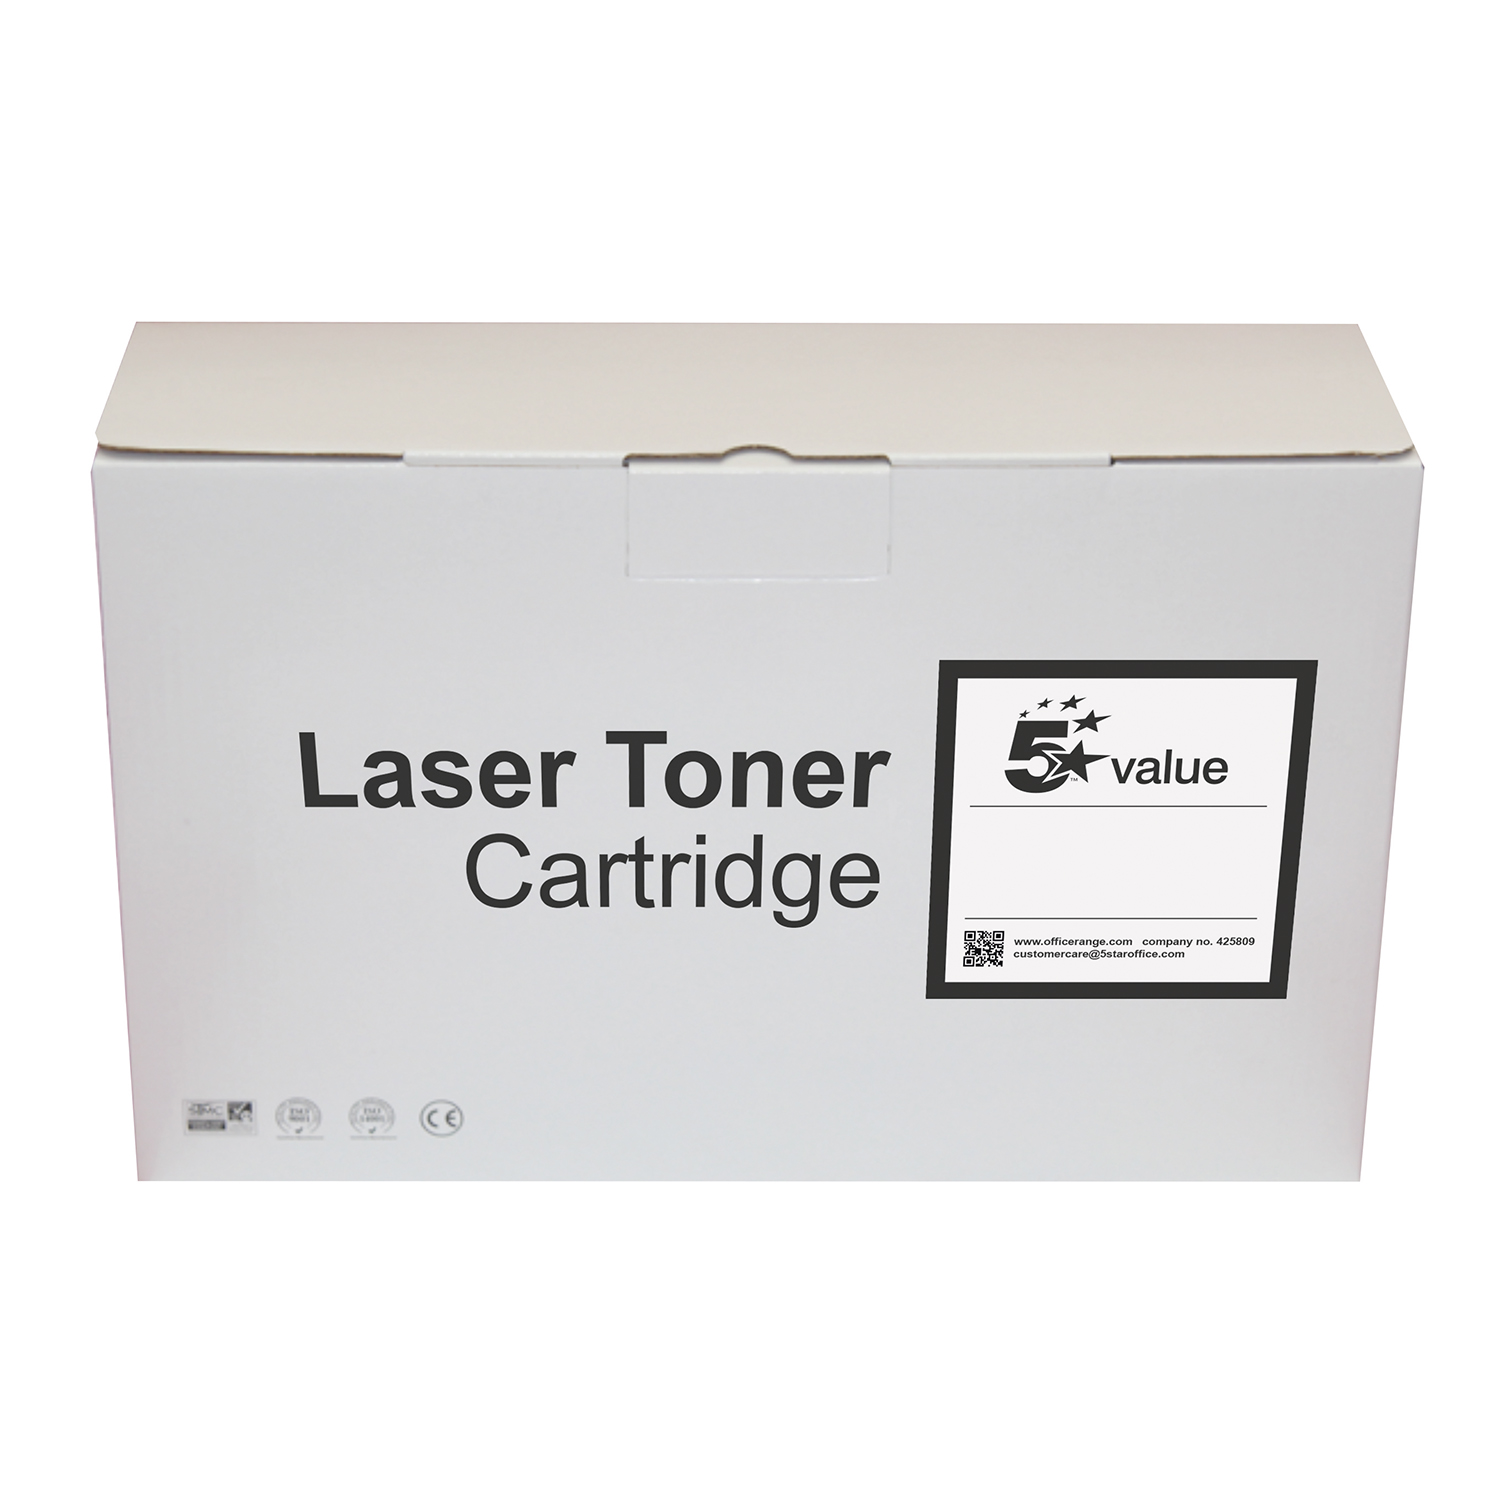 Laser Toner Cartridges 5 Star Value Oki Toner Cartridge Cyan 44973535